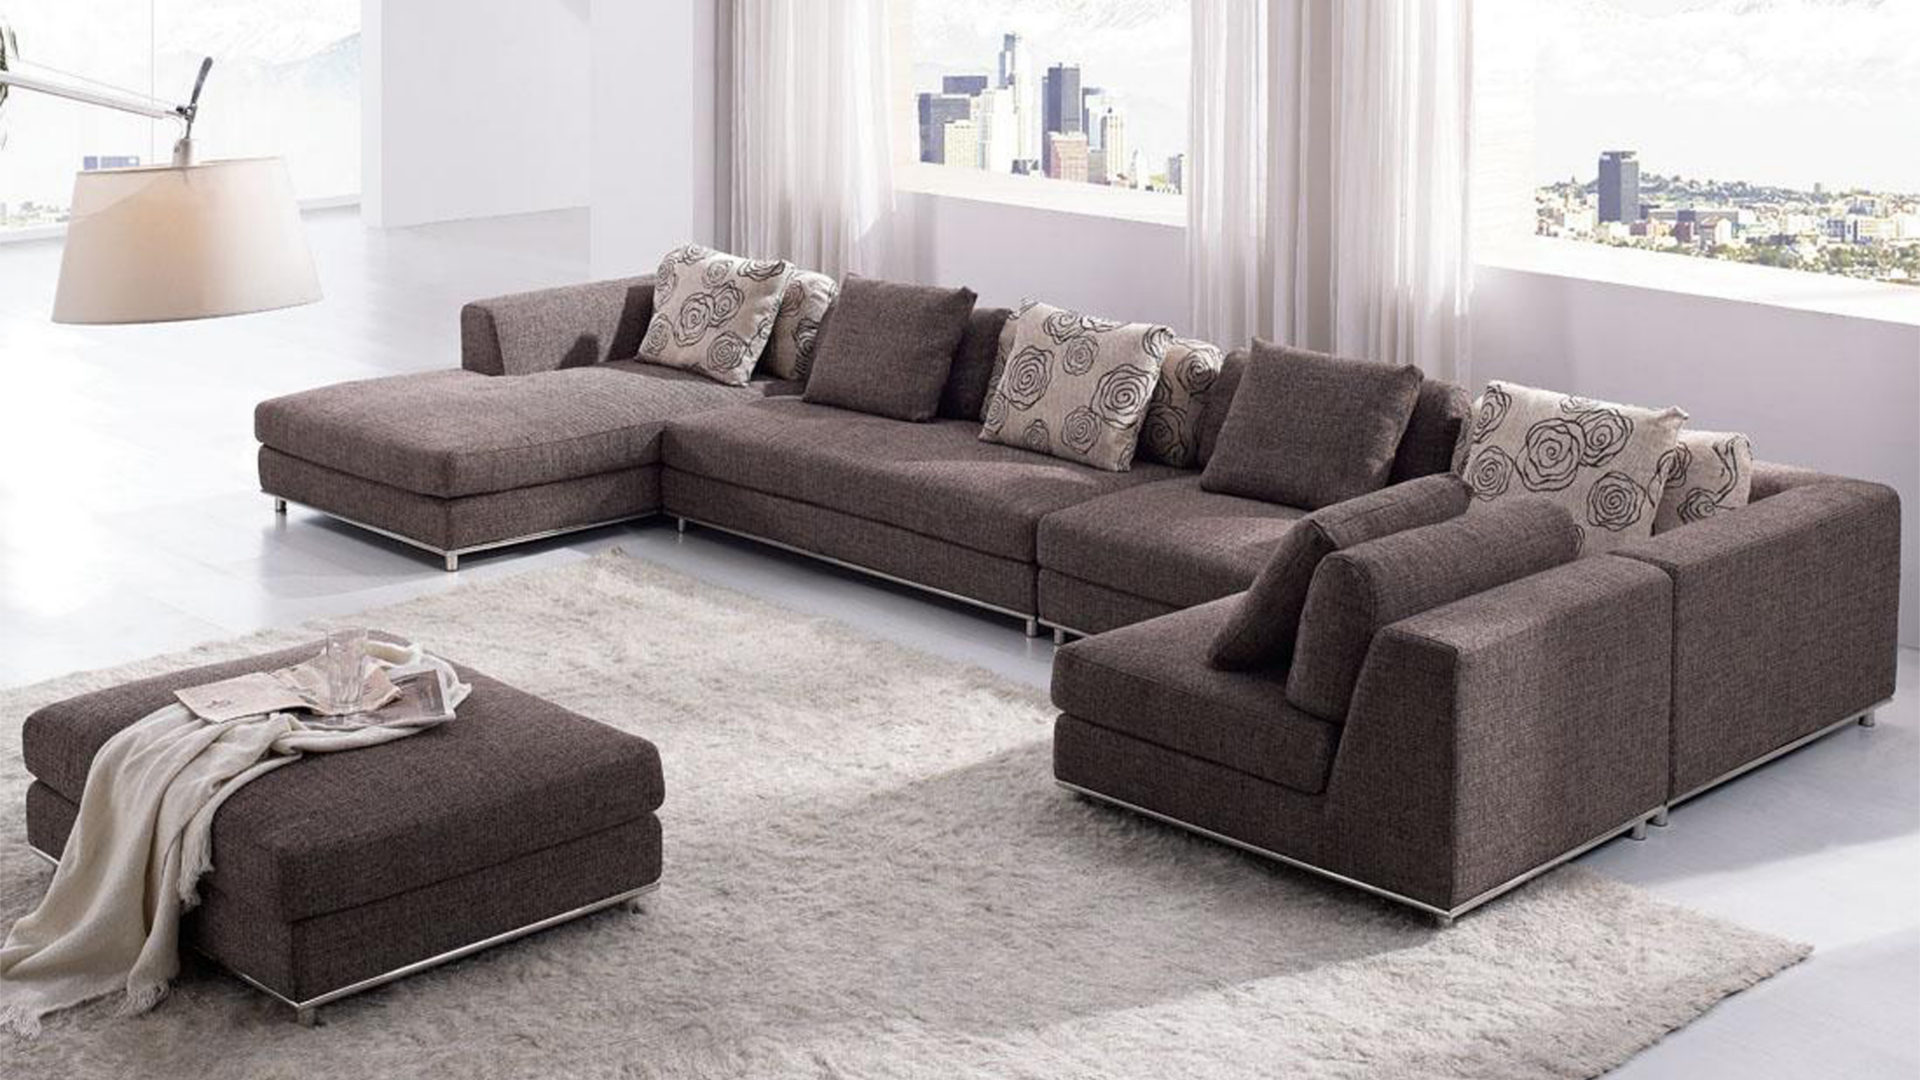 Comfortable Sofa Bed Designs